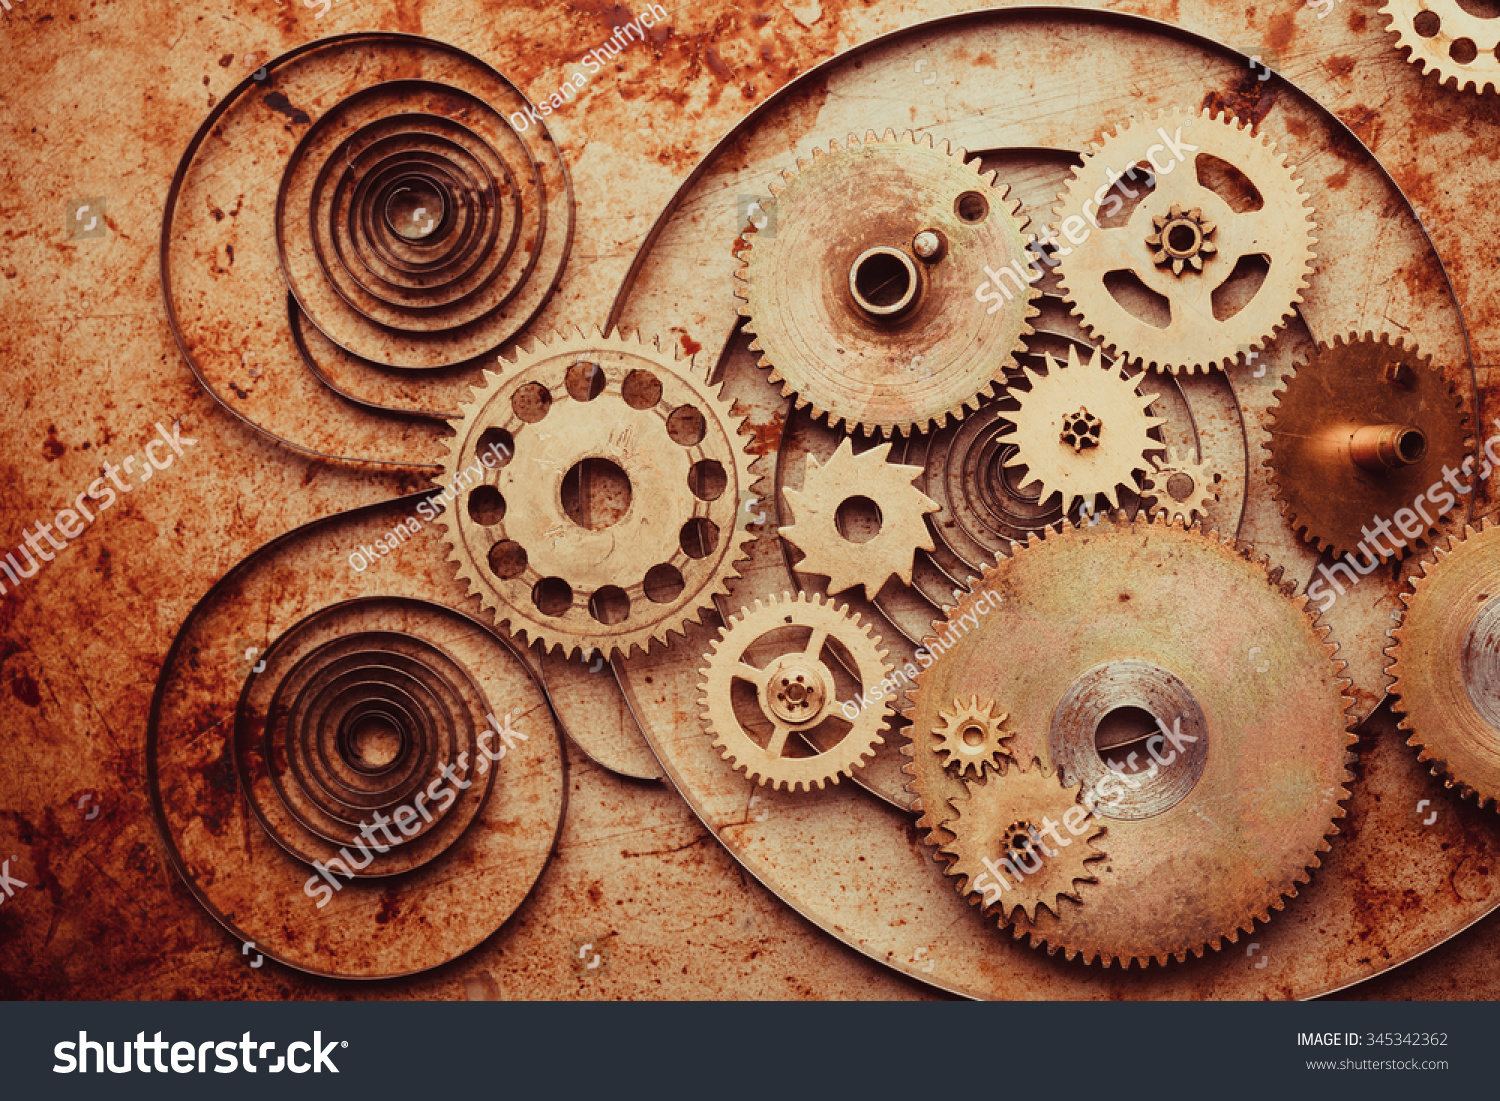 Steampunk Background Mechanical Clocks Details Over Stock